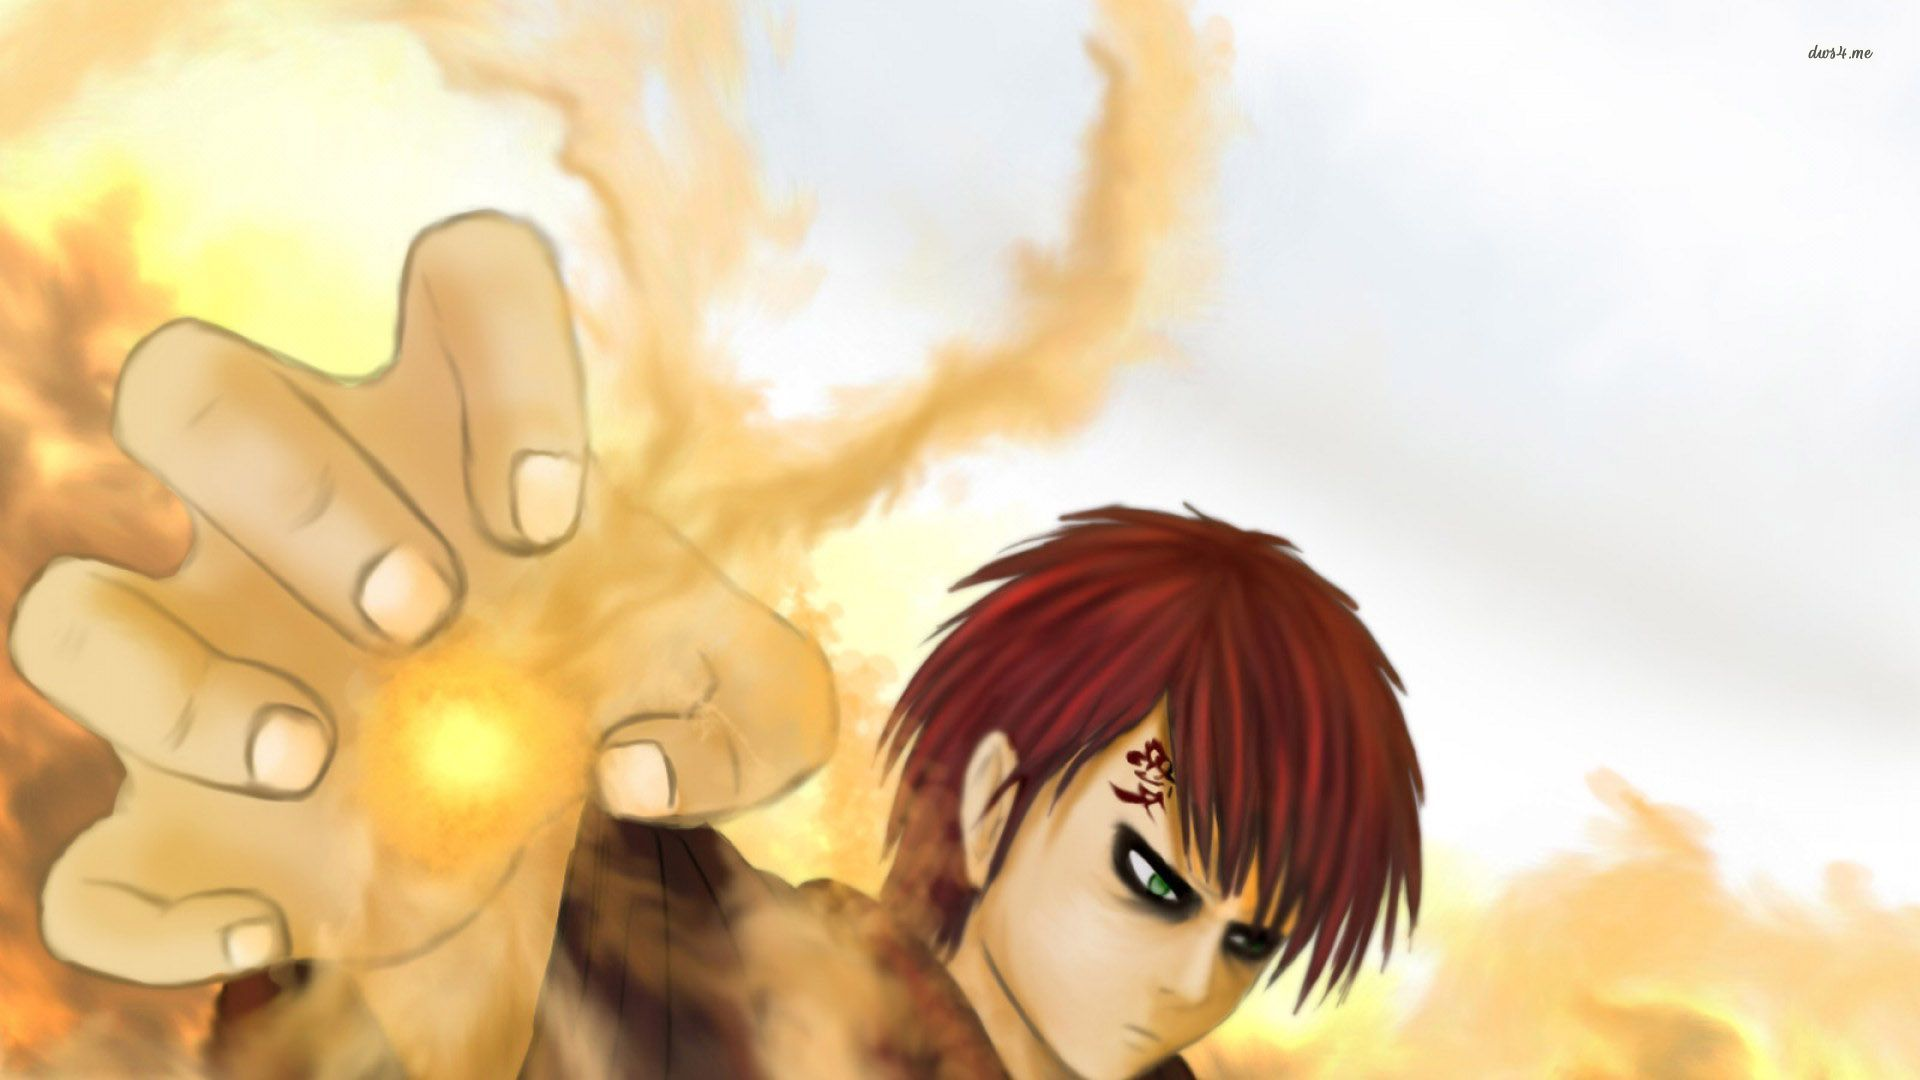 Gaara   Naruto wallpaper 1680x1050 Gaara   Naruto wallpaper 1920x1080 1920x1080